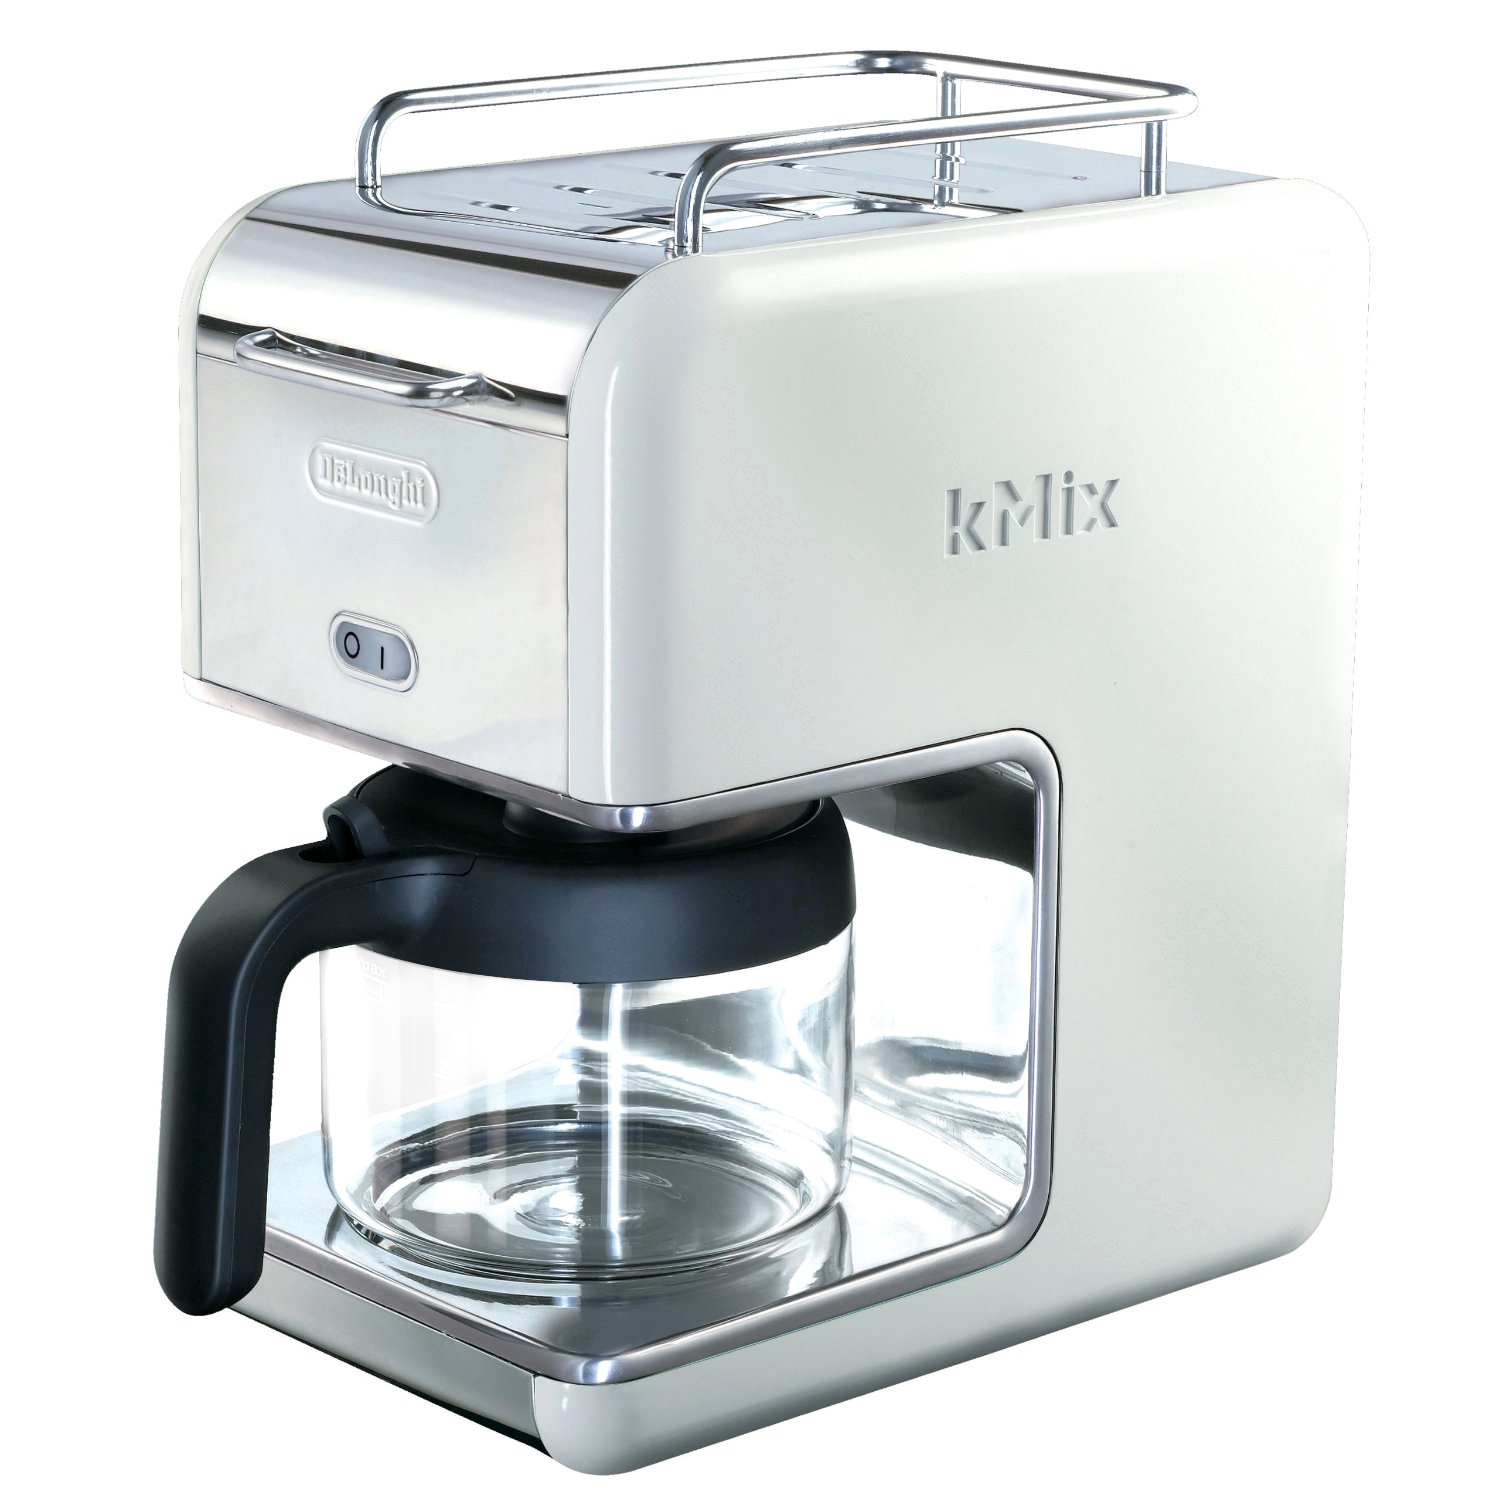 Delonghi White Kmix Drip Coffee Maker, 5 Cup